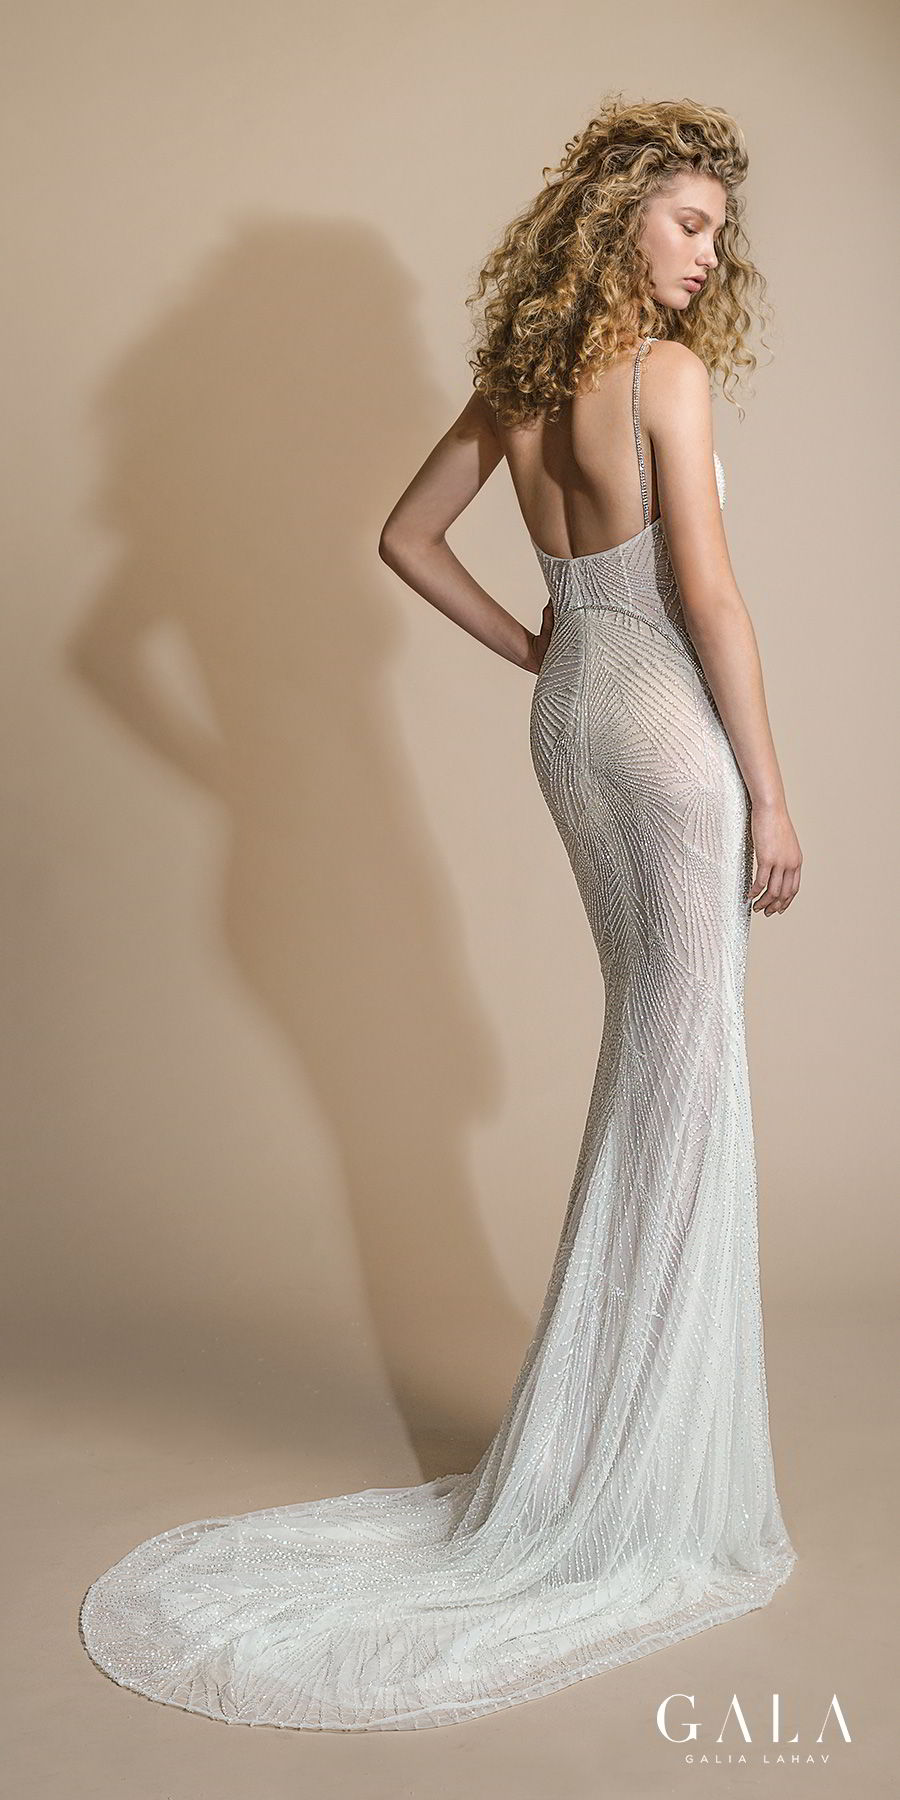 galia lahav gala 2019 bridal sleeveless halter jewel neck full embellishment glamorous art deco sheath wedding dress open back sweep train (110) bv